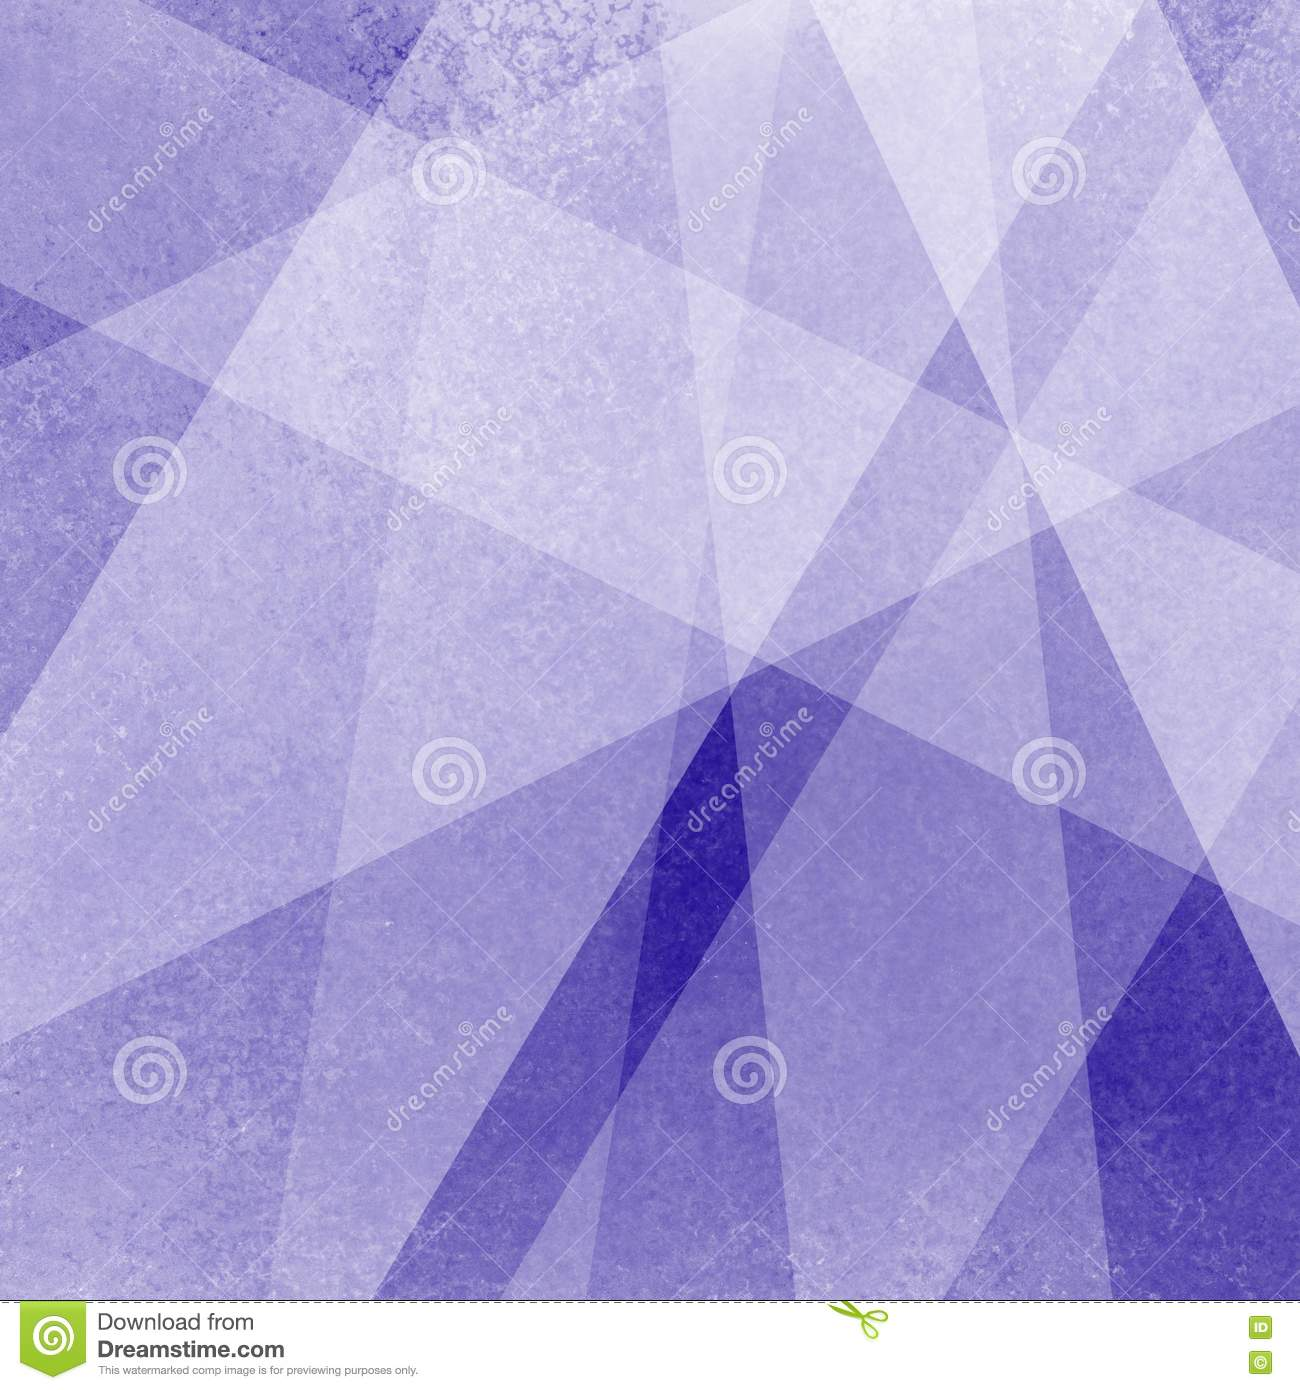 Abstract blue background with geometric layered rectangles